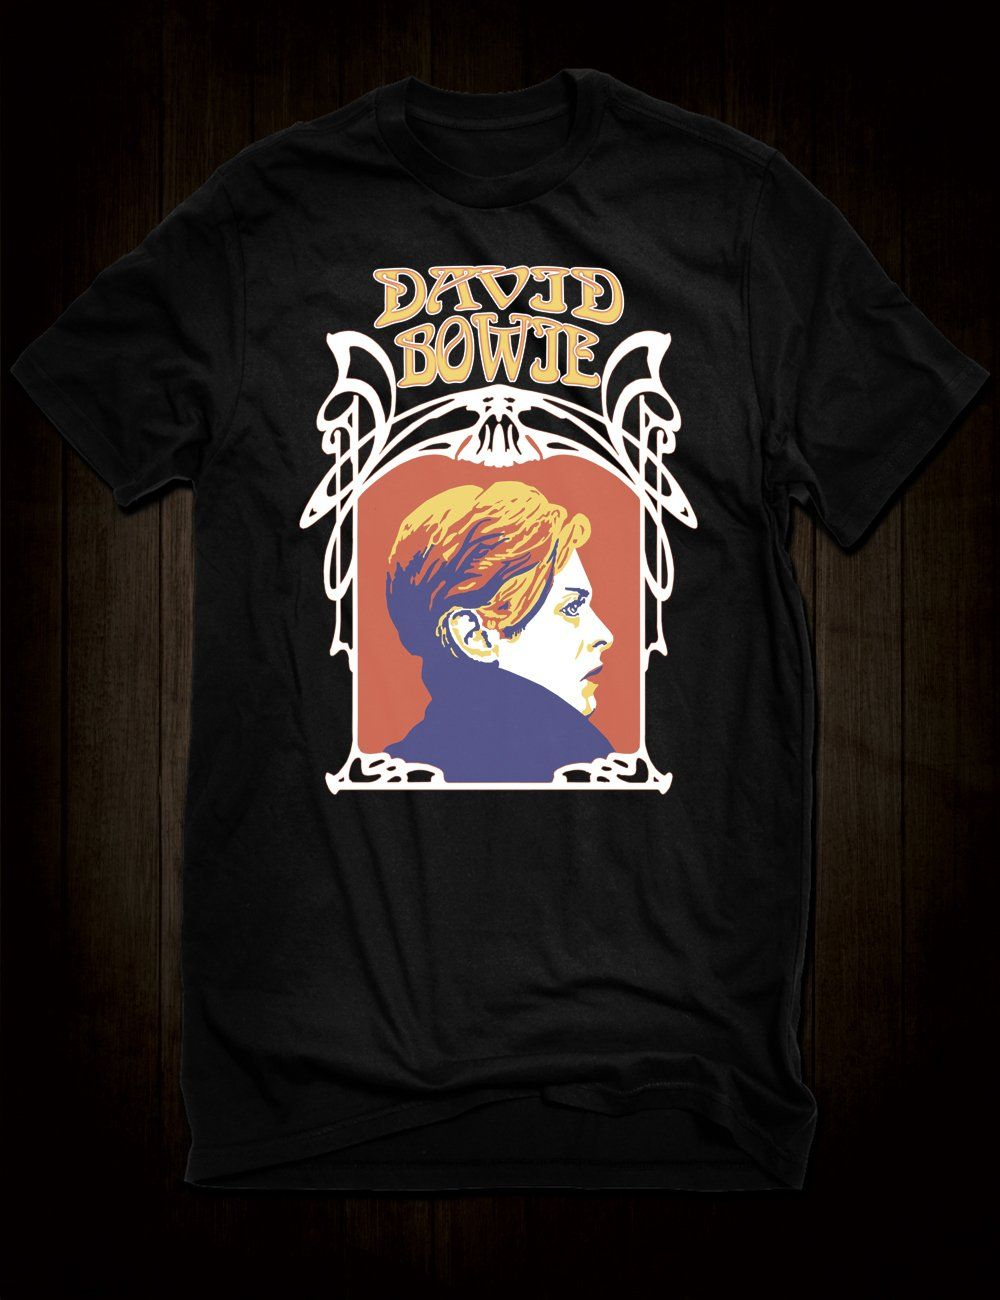 7b11d52b824 David Bowie Concert Poster T-Shirt - Small